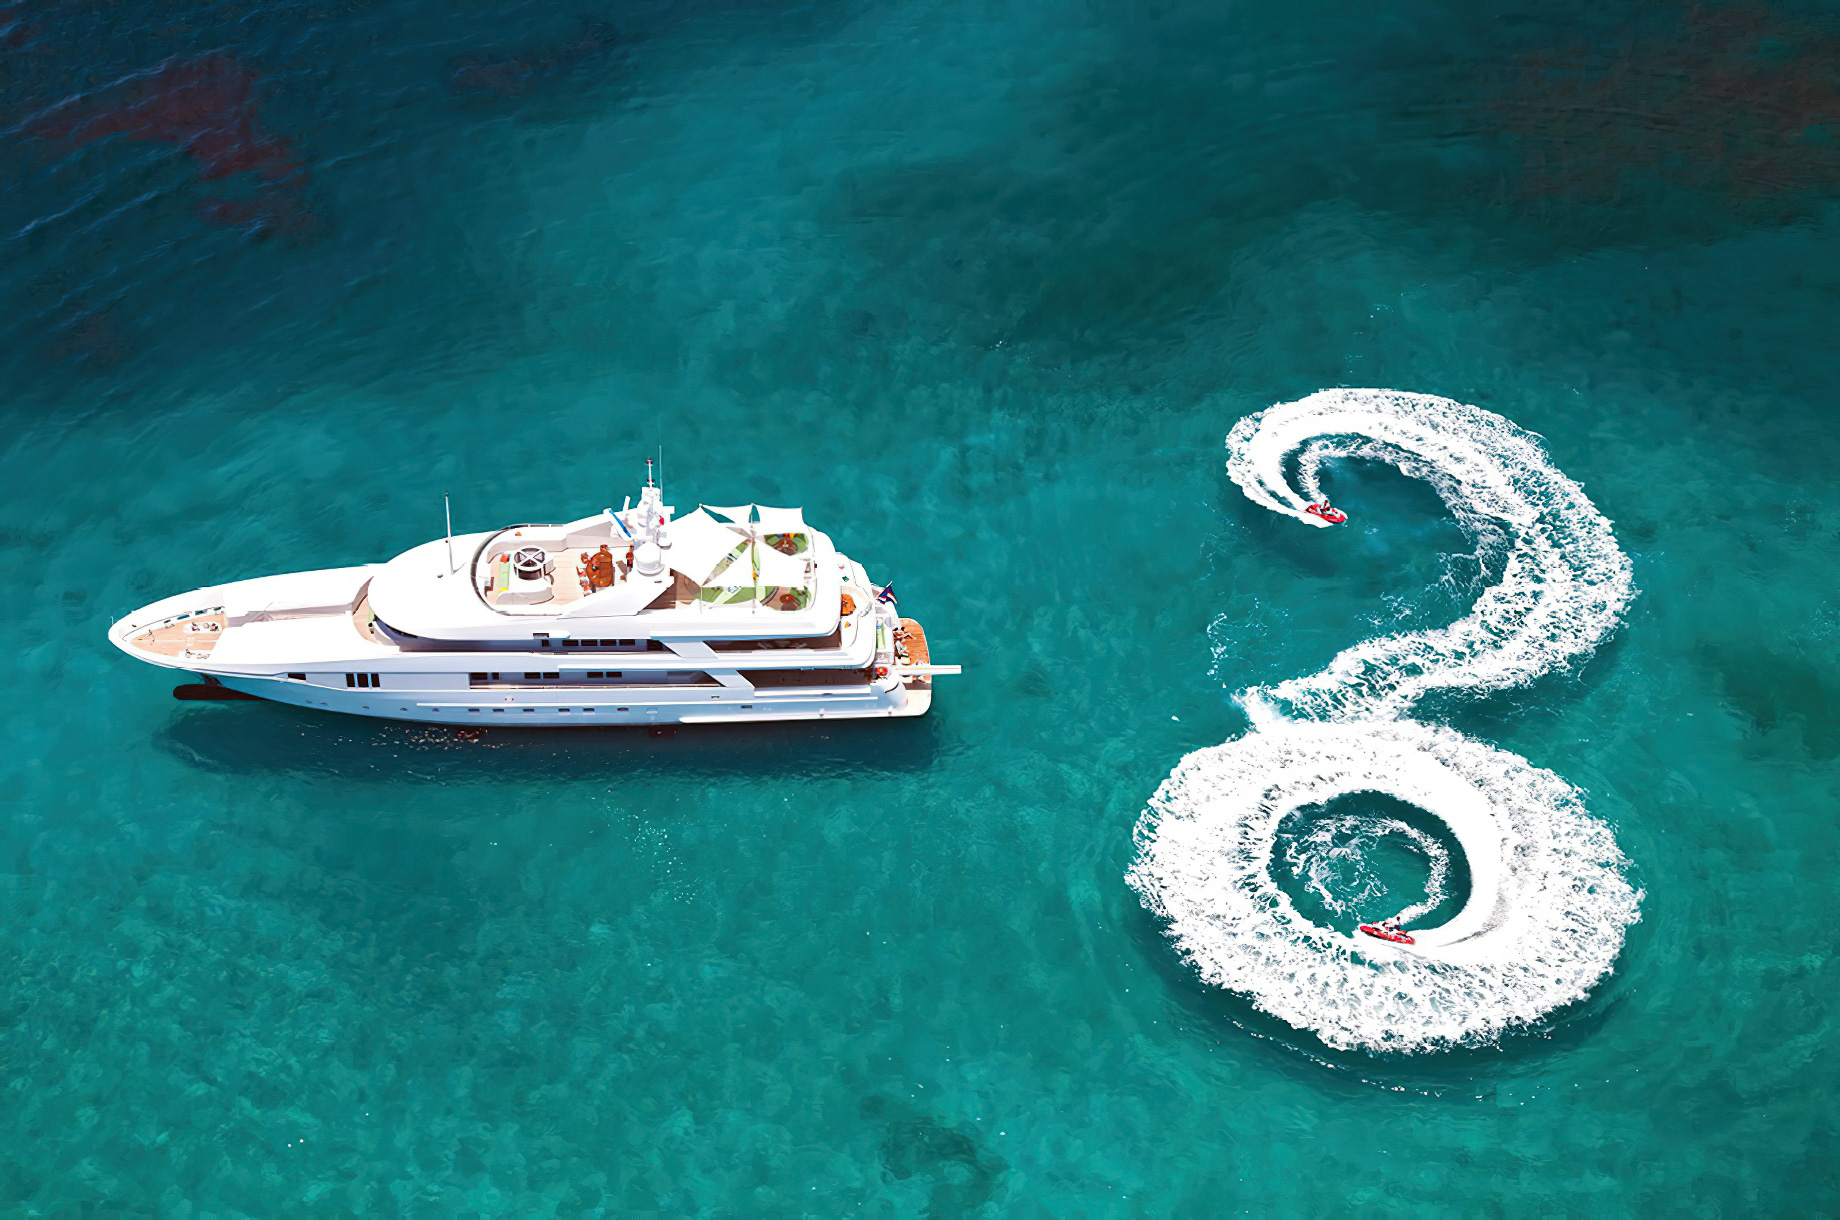 Rhino Luxury Yacht - Some of The Best American-Made Yachts For Sale - Admiral Marine Yachts